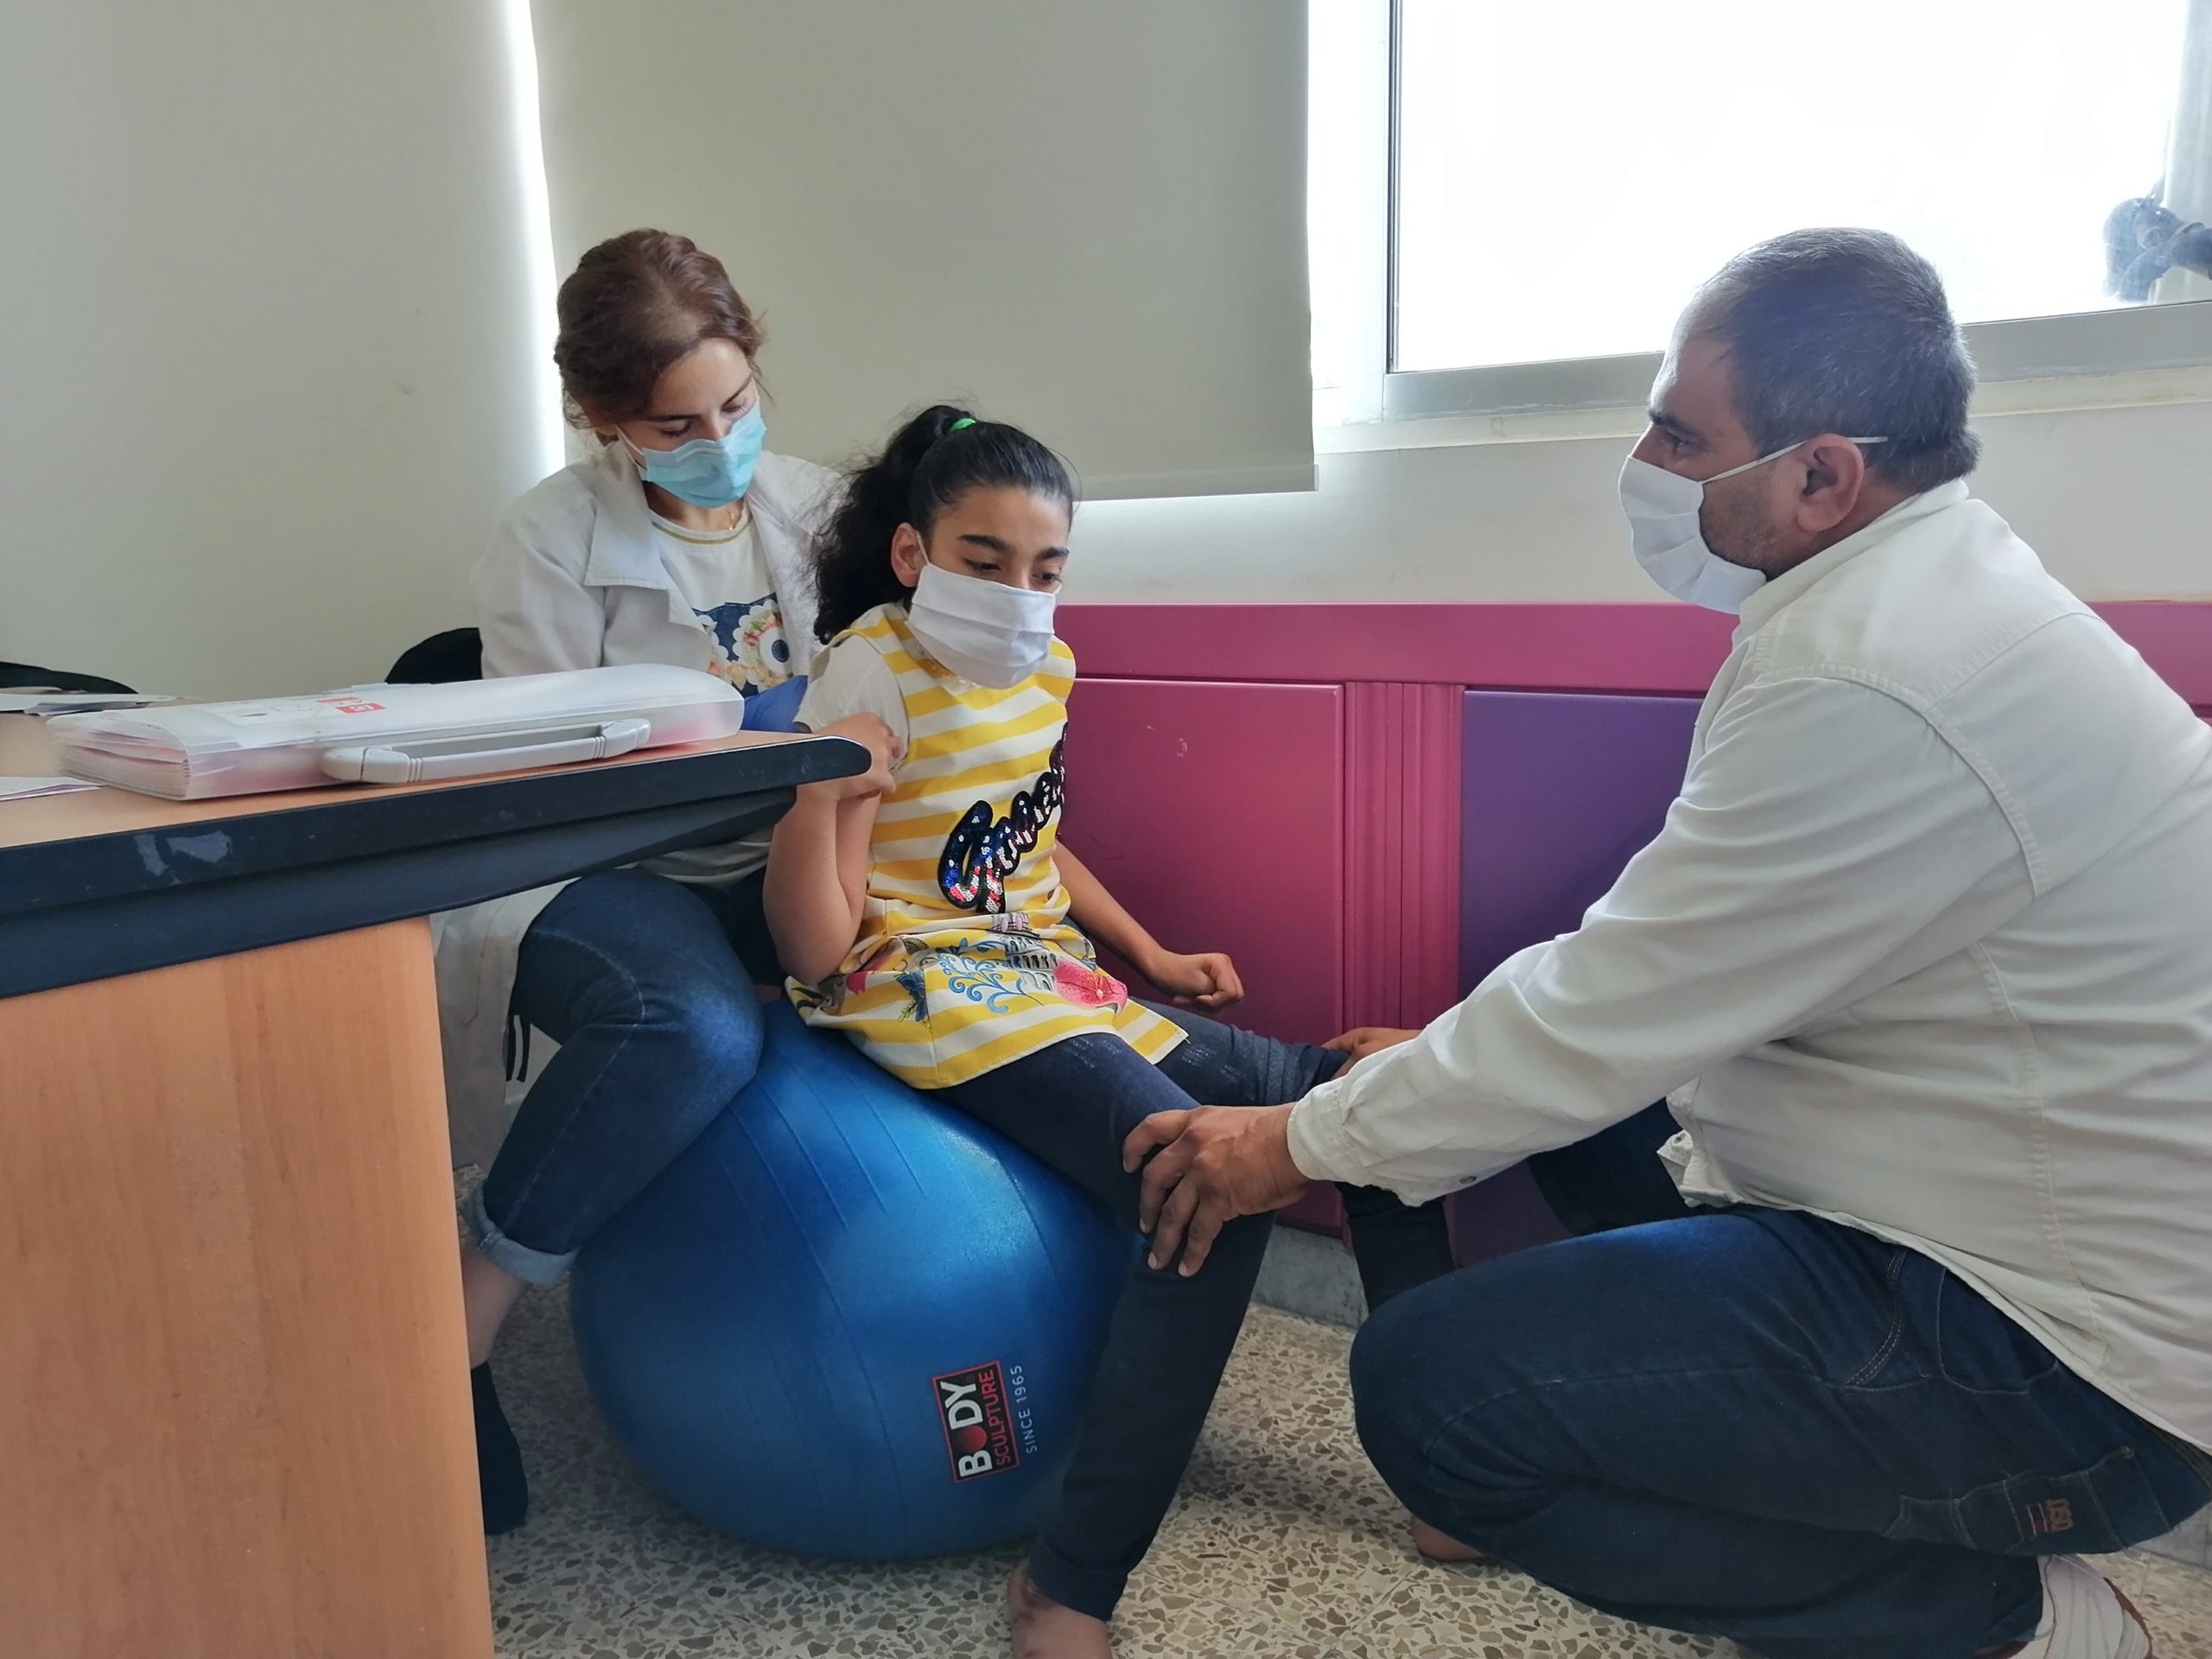 Physiotherapy sessions in Lebanon.